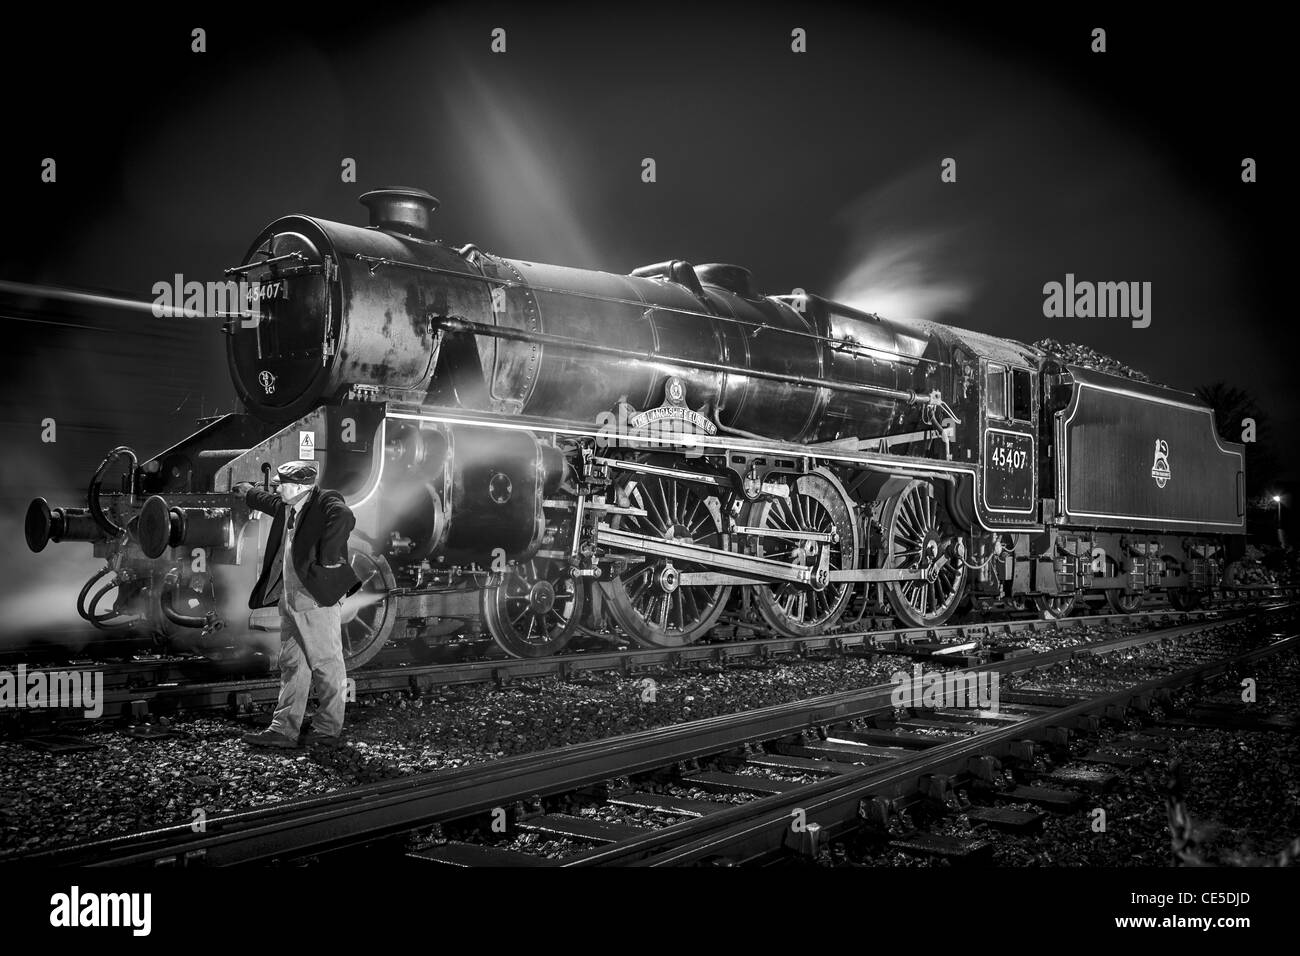 Loco Black and White Stock Photos & Images - Alamy